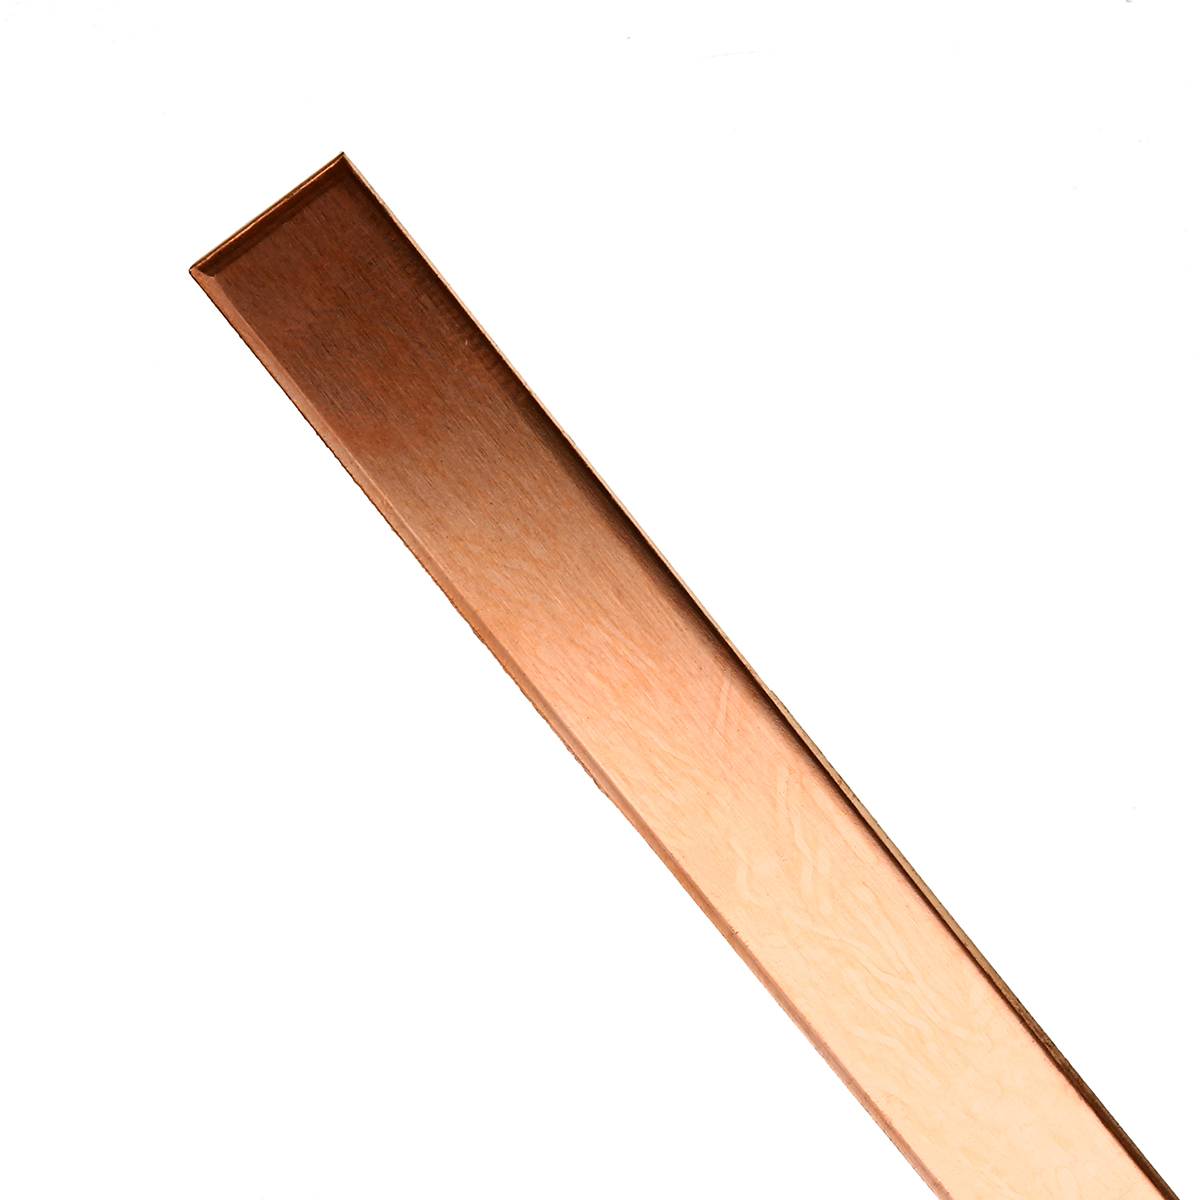 1.5mm Thickness Copper Bar 99% High Purity Copper Strip T2 Cu Metal Sheet For DIY CNC PCB Kit Laminate Circuit Board 10mm*250mm